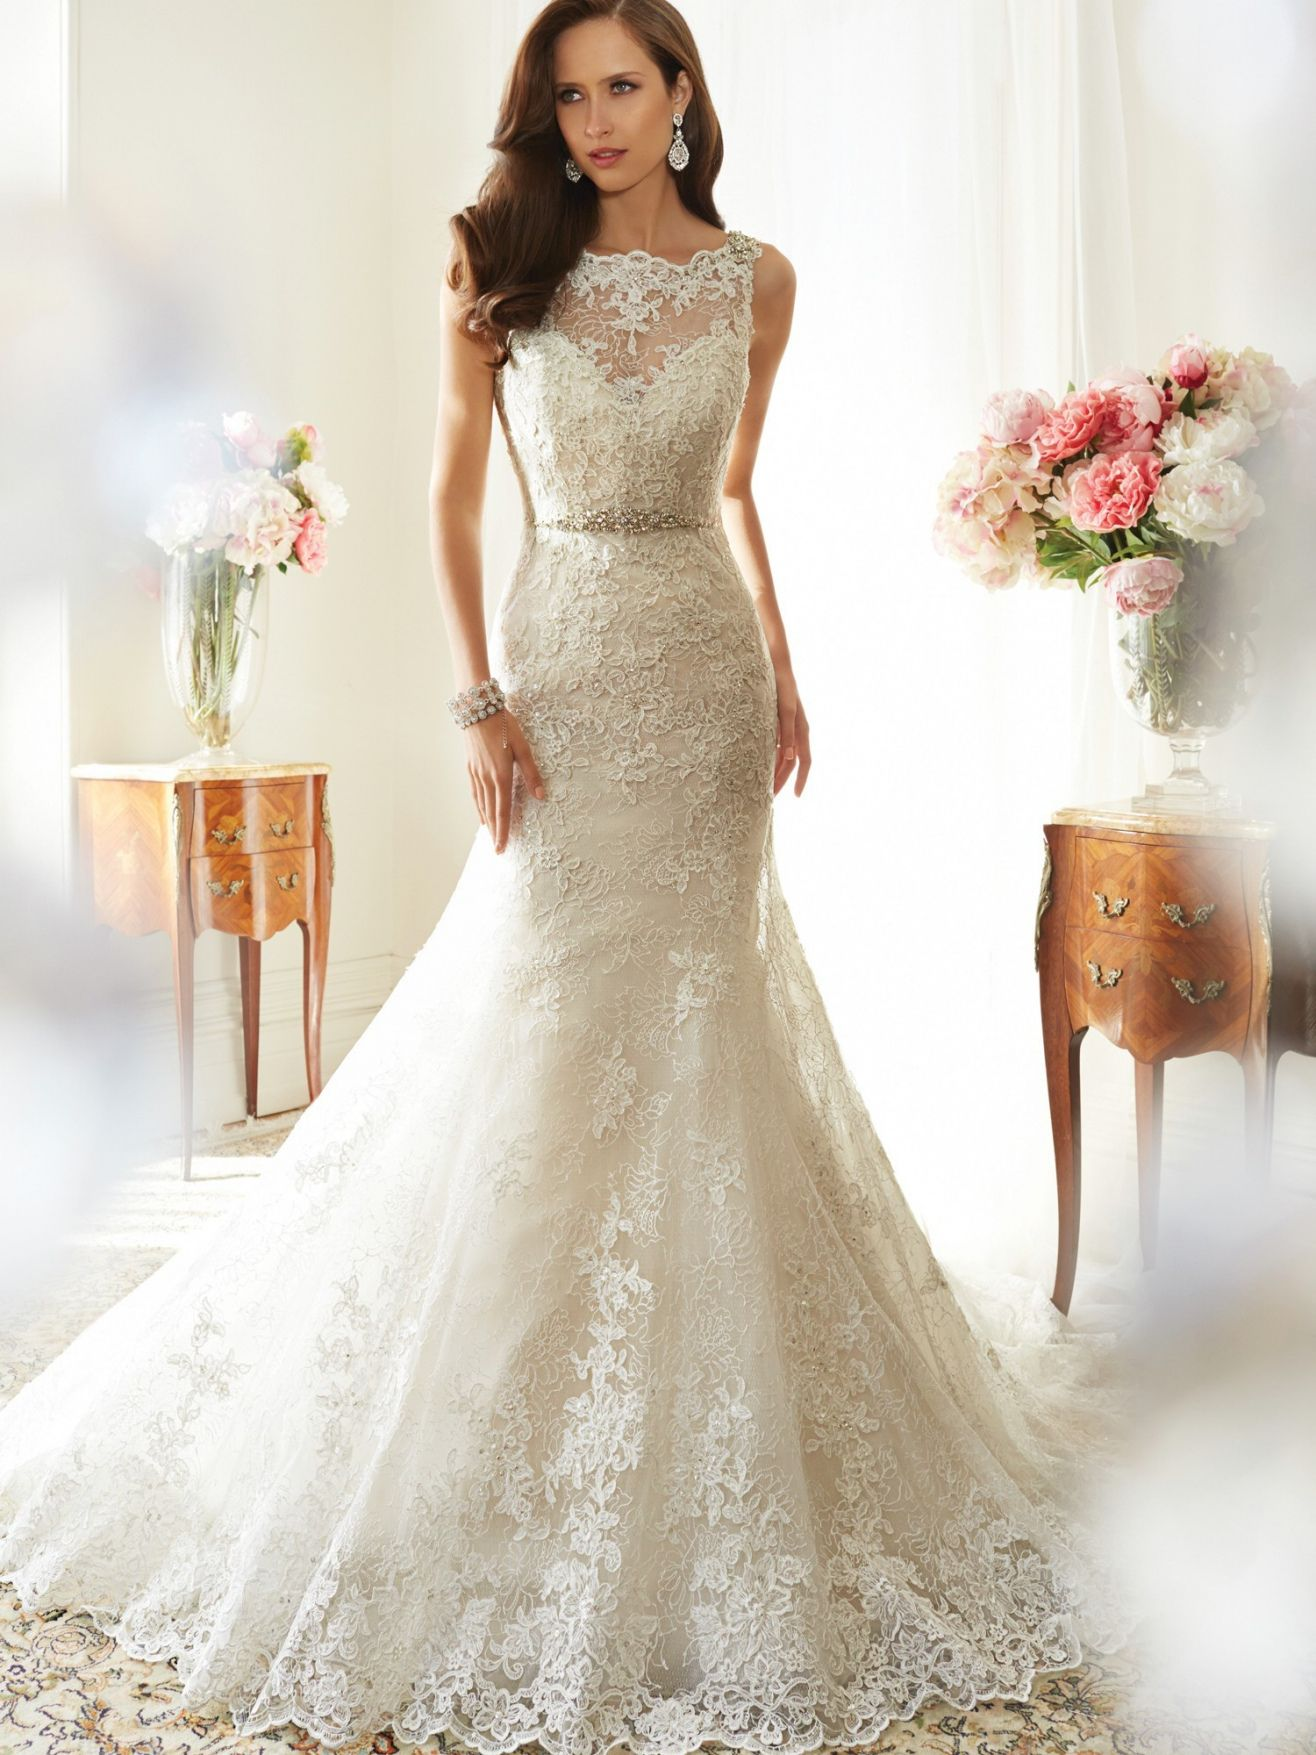 Womens dresses wedding guest   How Much are Wedding Dresses  Womenus Dresses for Wedding